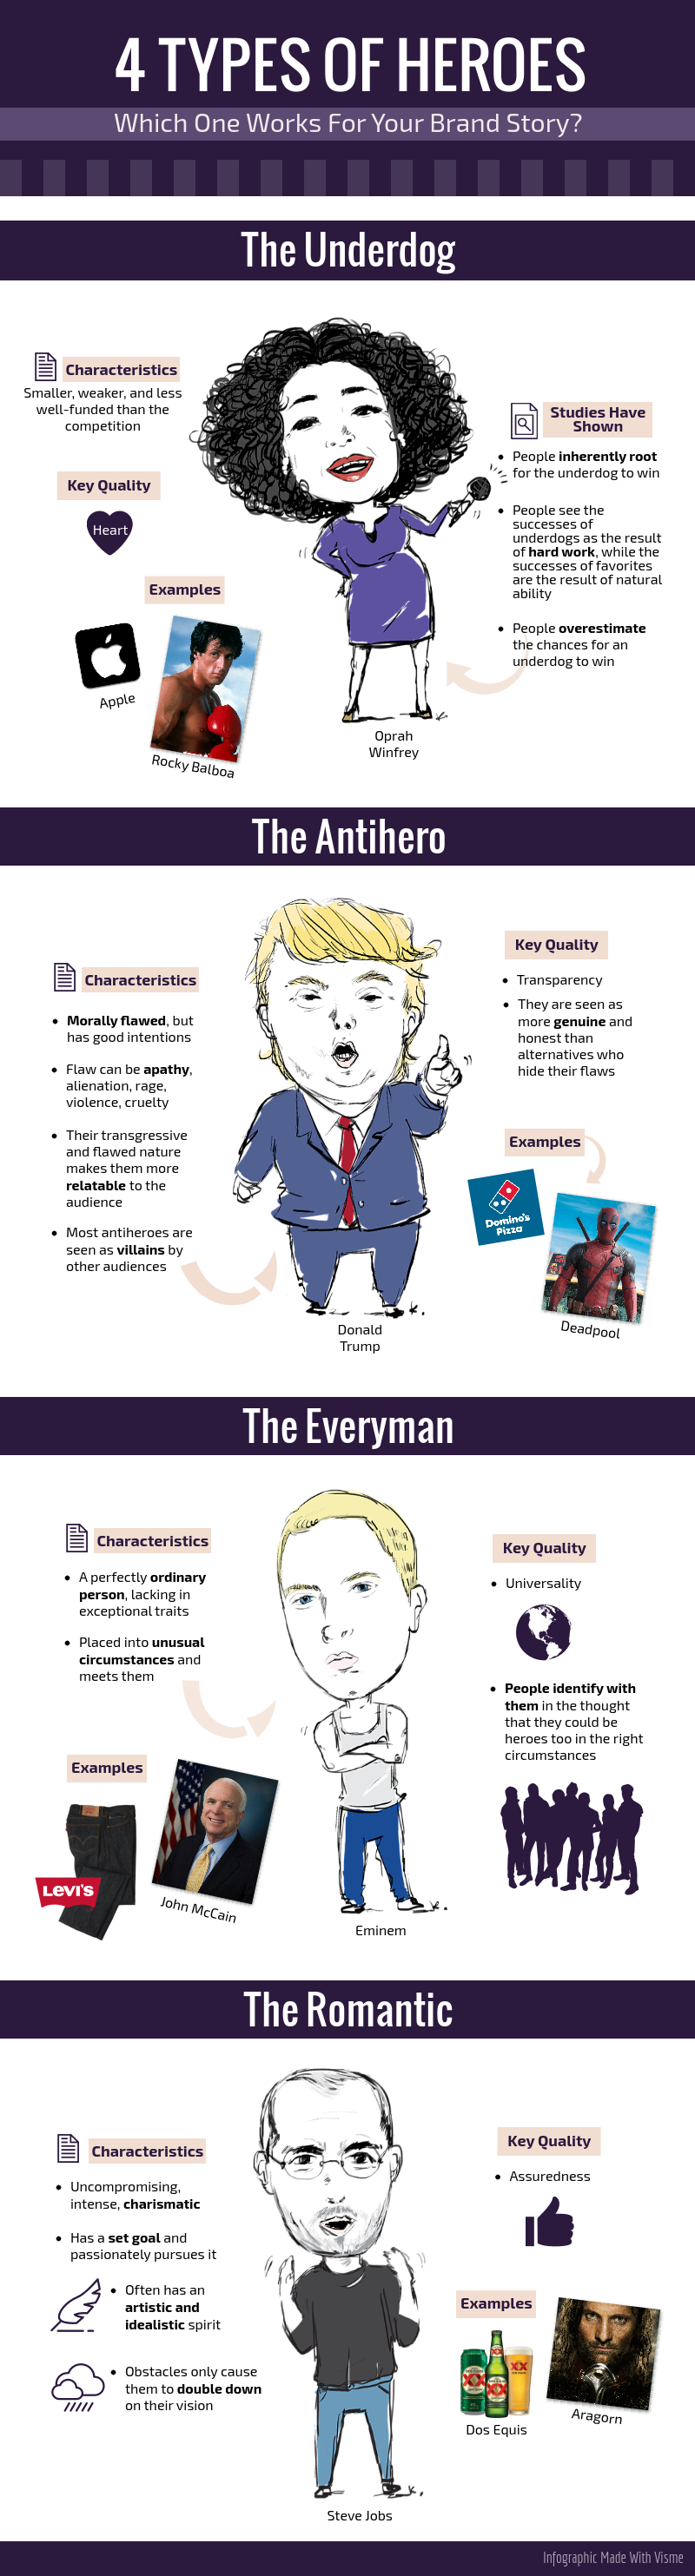 brand_hero_archetypes_infographic